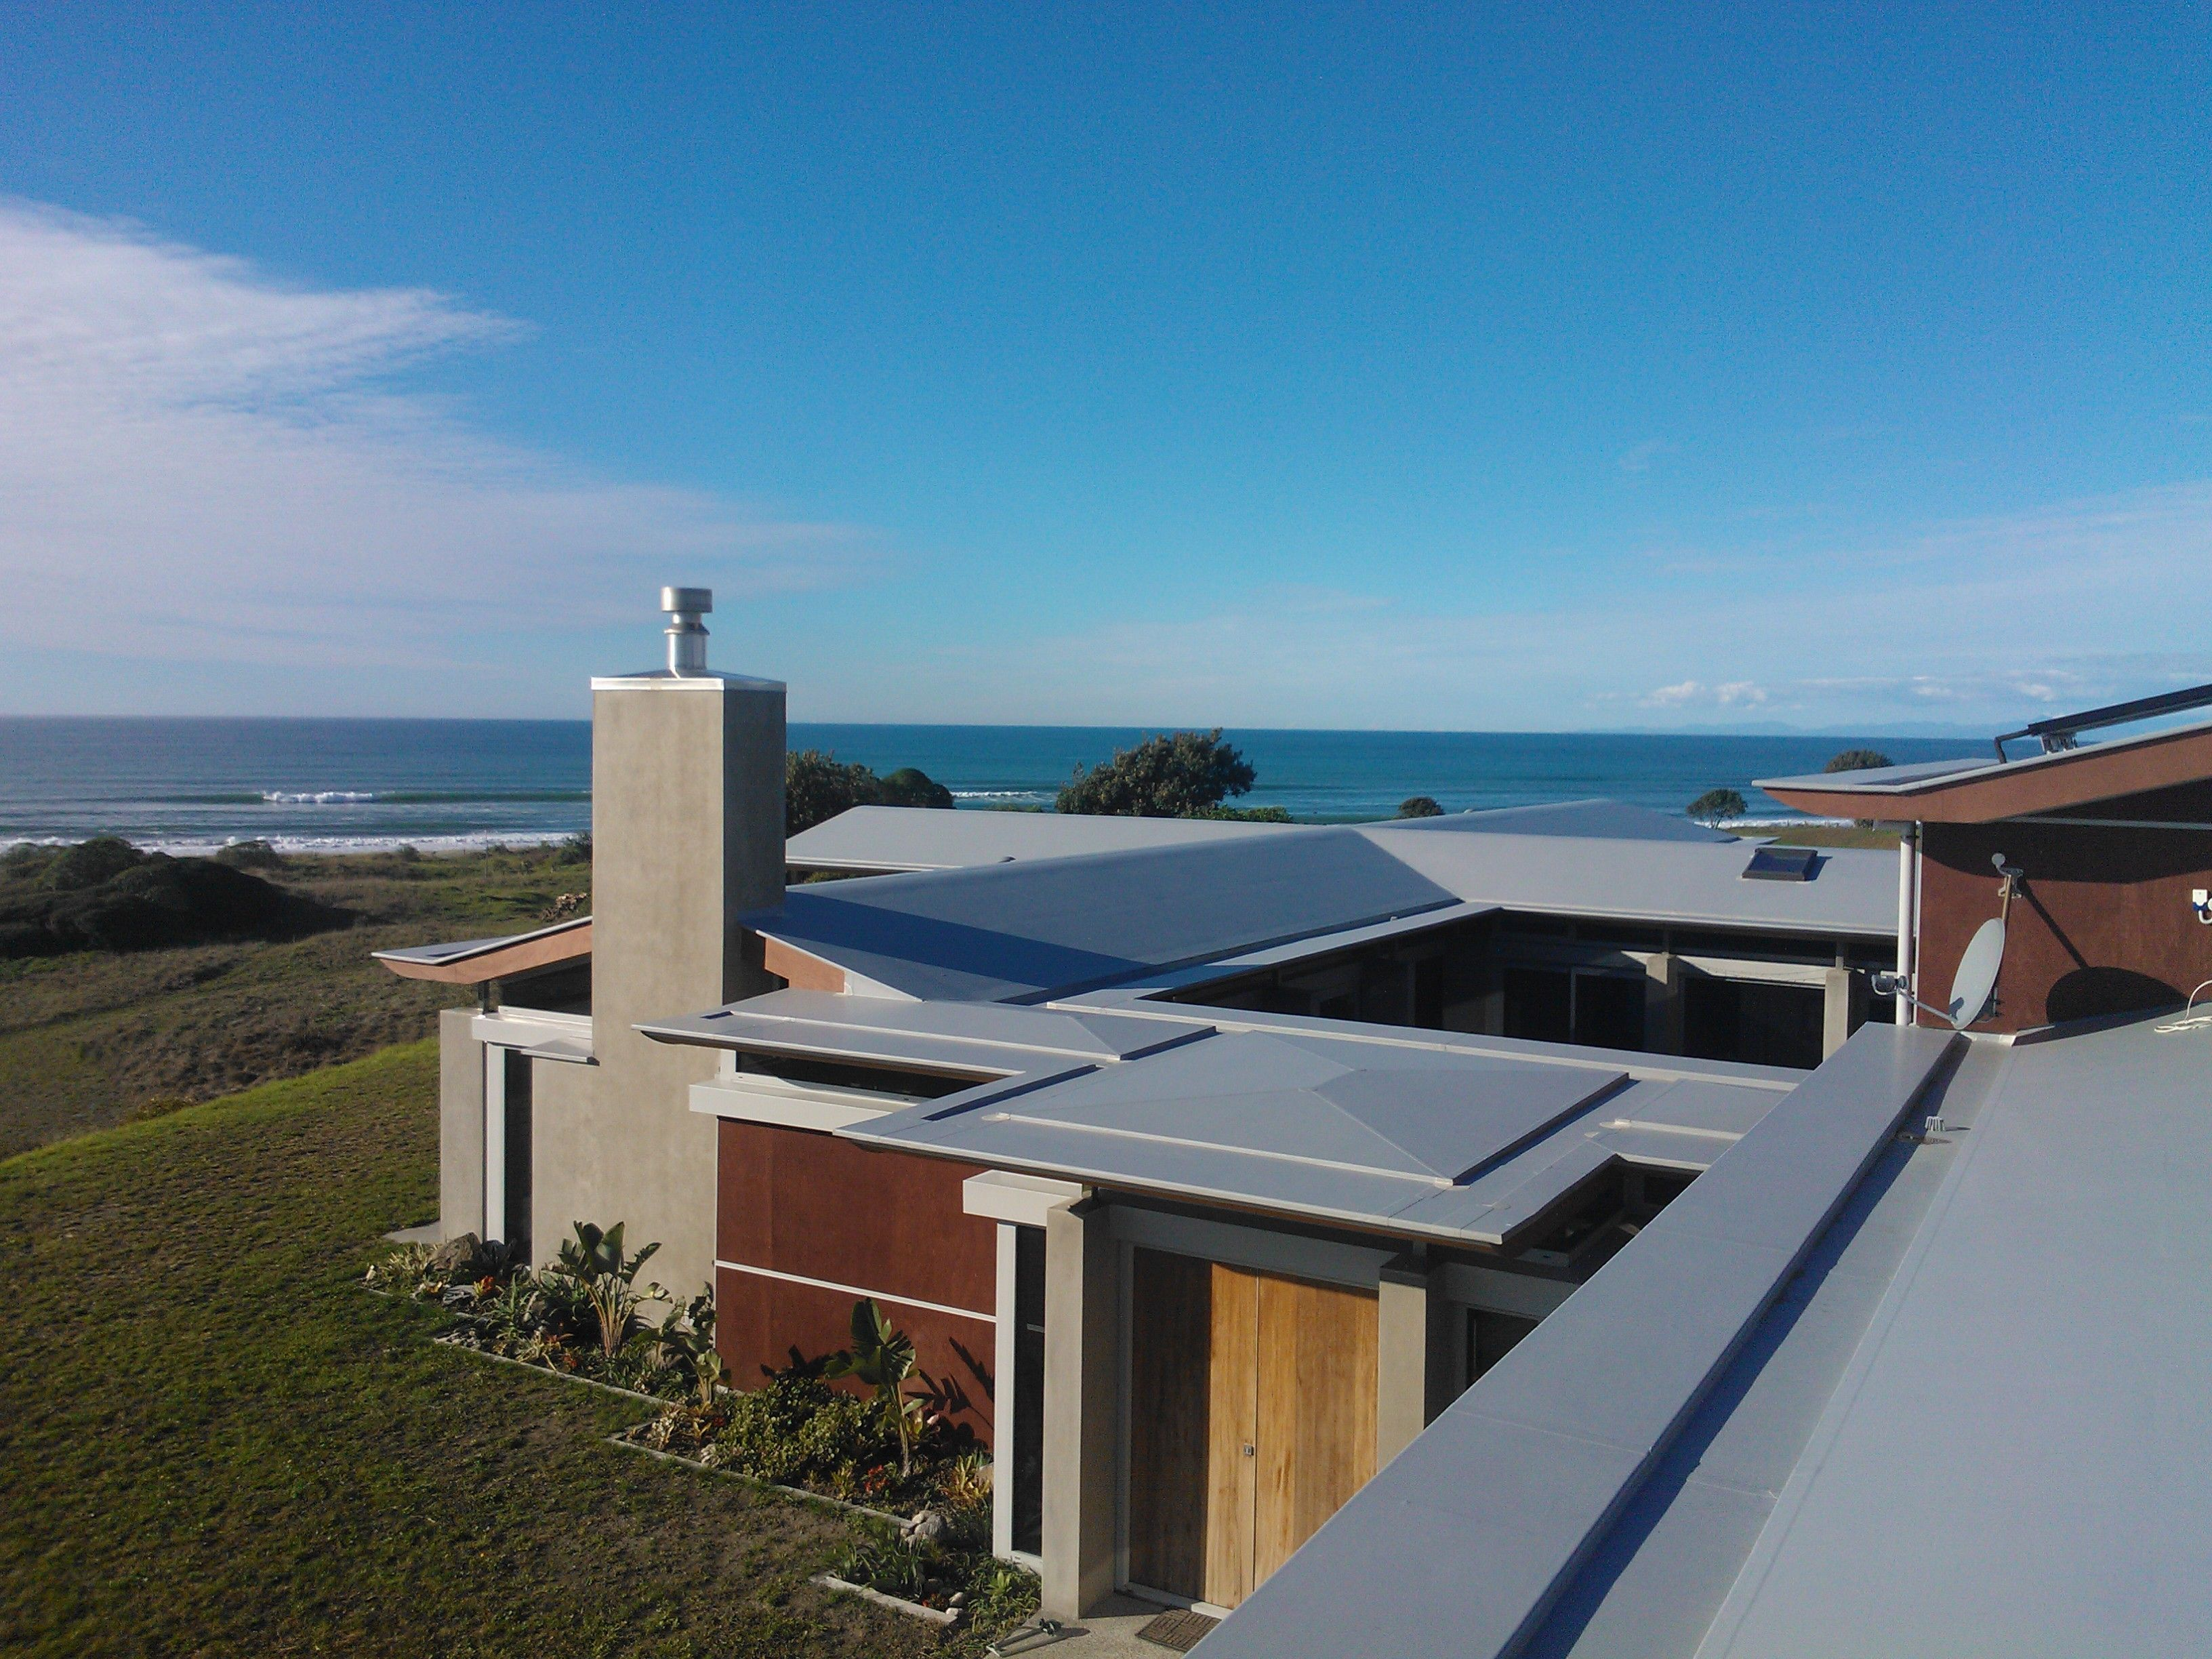 Waterproofing Low Slope Roofs Pitched Roofs Gutters Parapets Weldable Membrane Flat Roof Design Roof Design New Zealand Houses